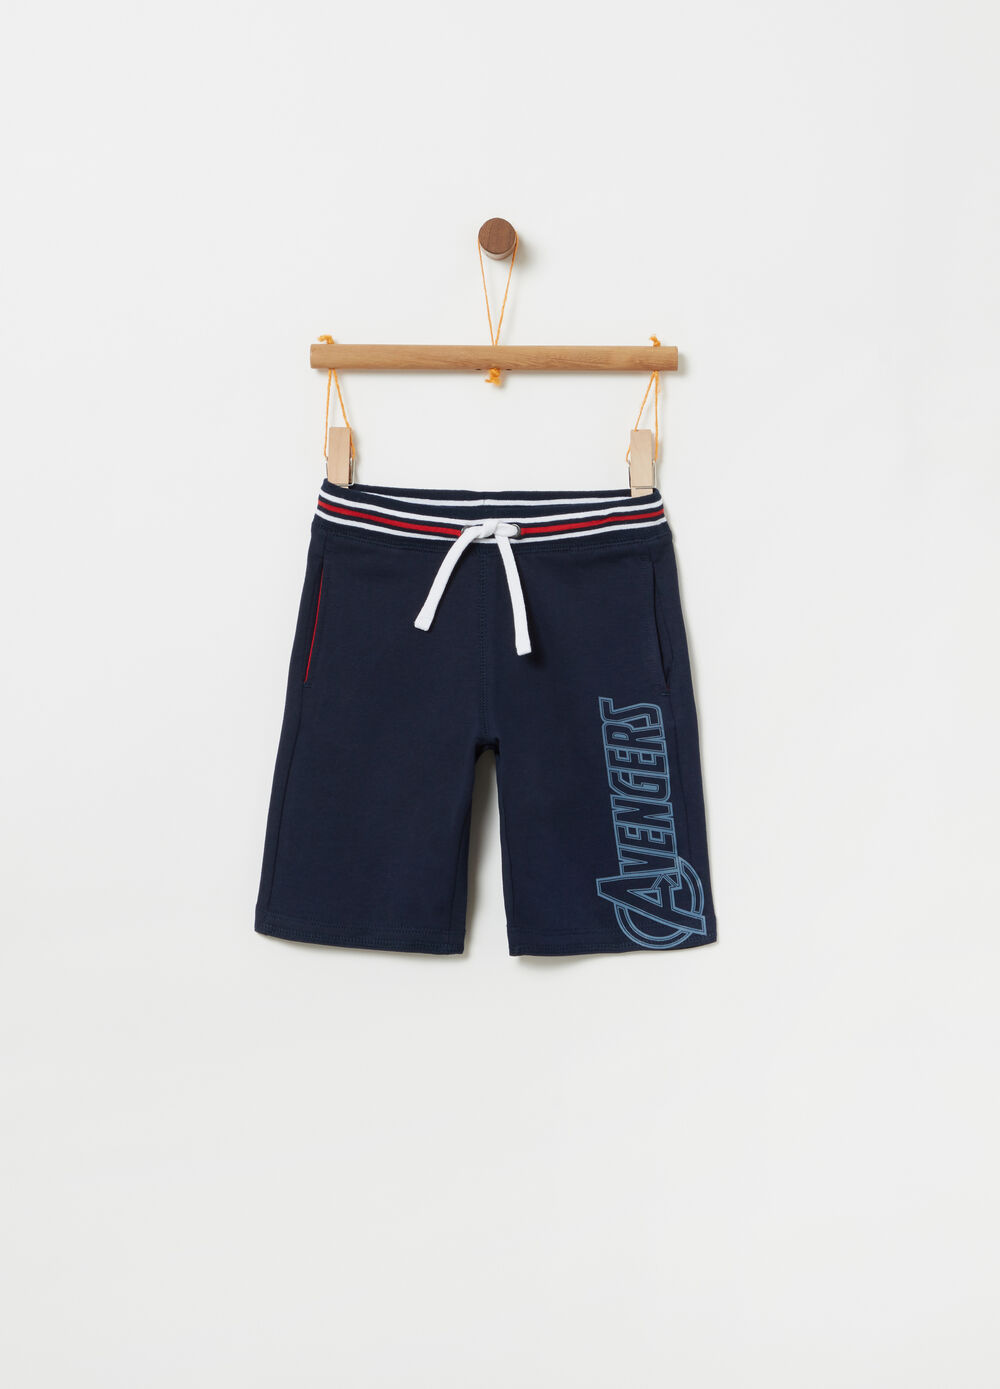 French Terry Marvel Avengers shorts